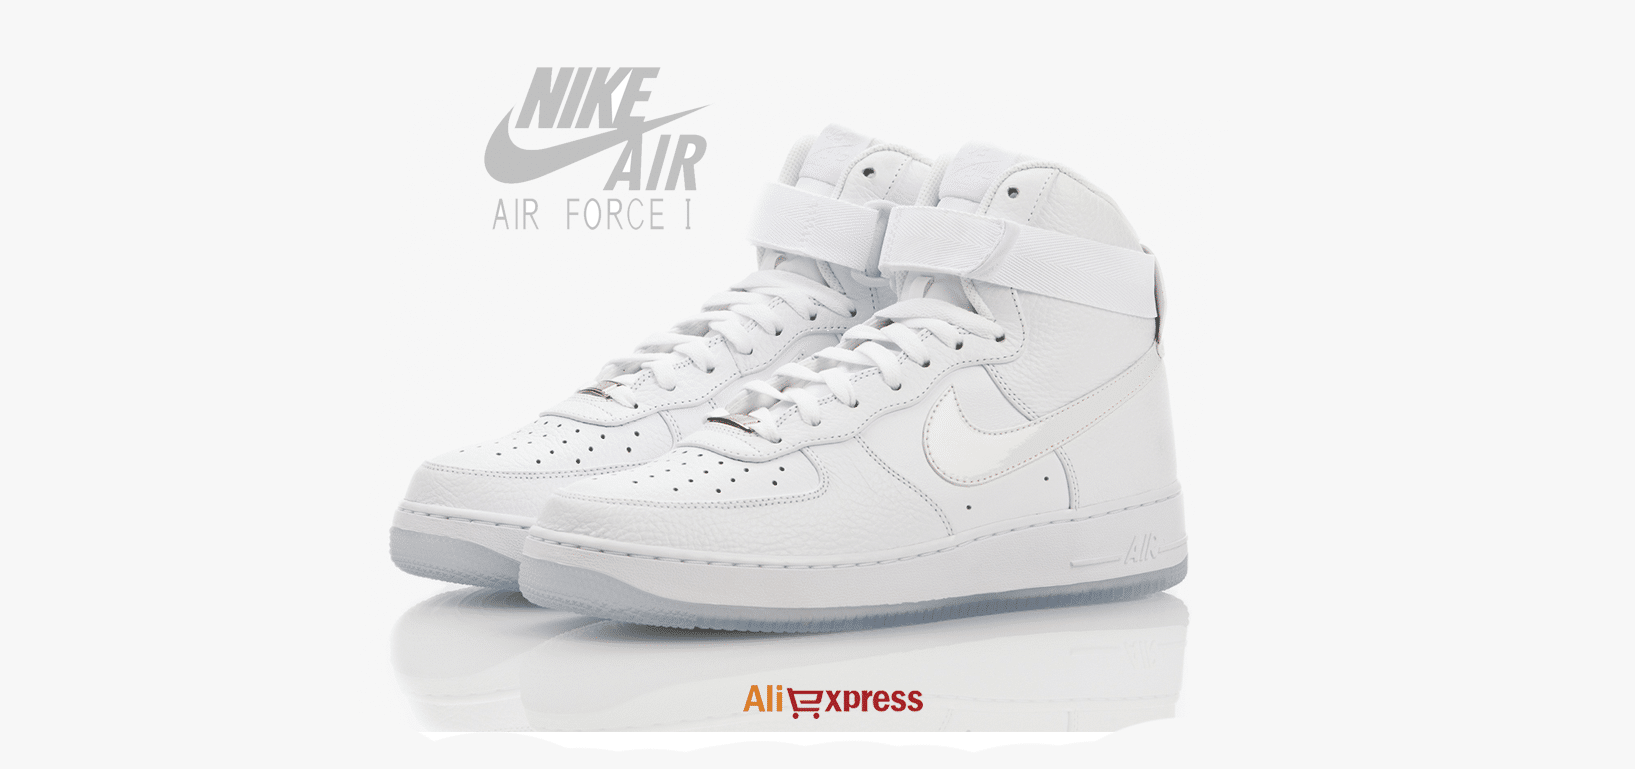 ebf4544e0bf30 Guide to buy cheap Nike Air Force on AliExpress 2019